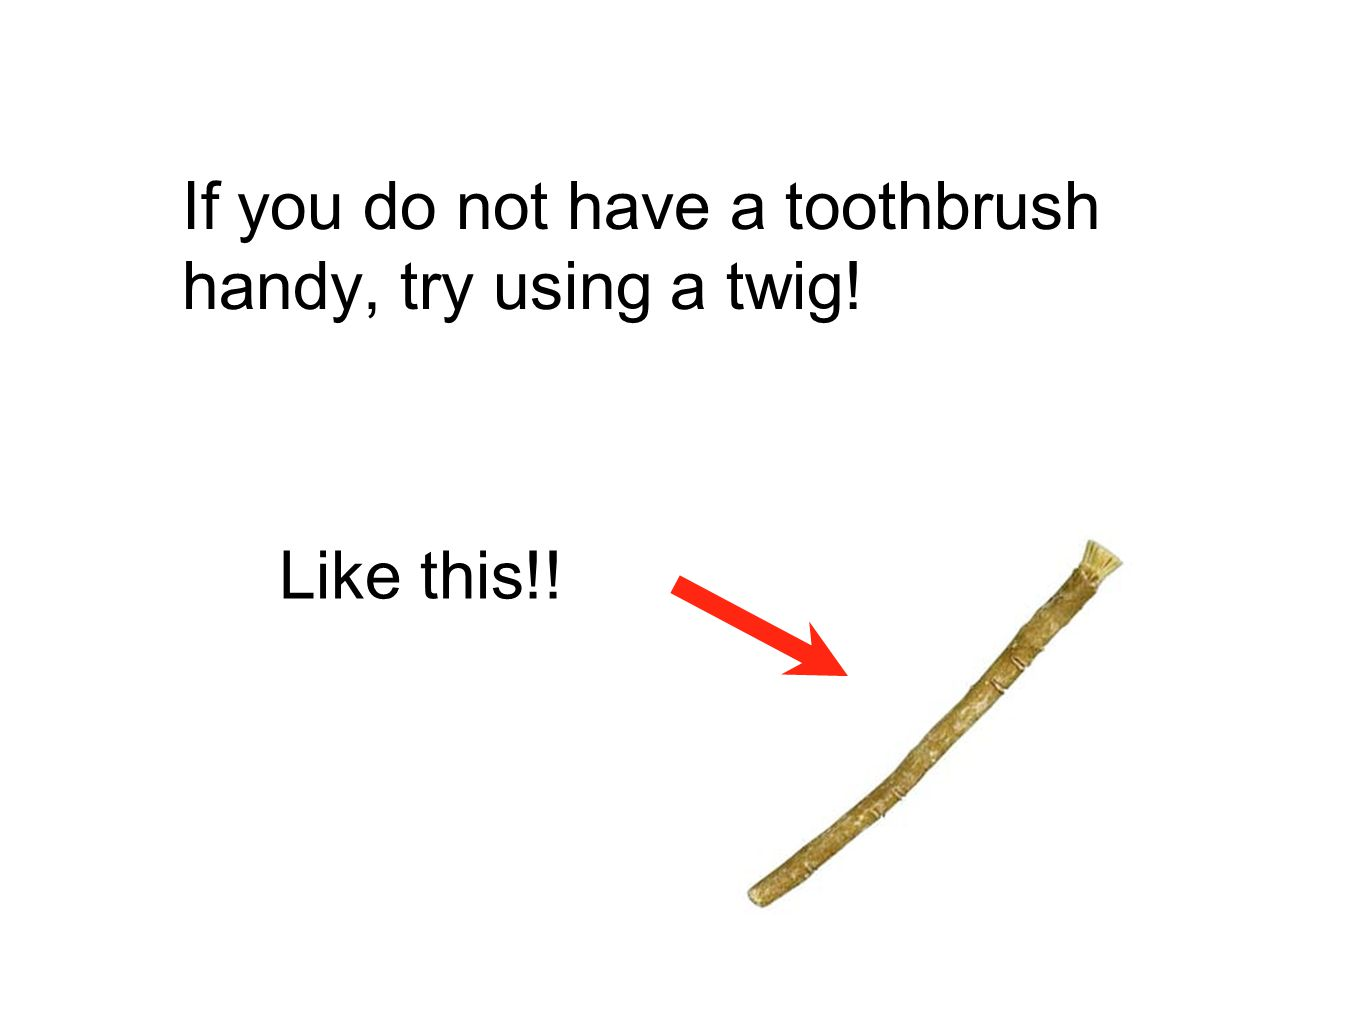 If you do not have a toothbrush handy, try using a twig! Like this!!